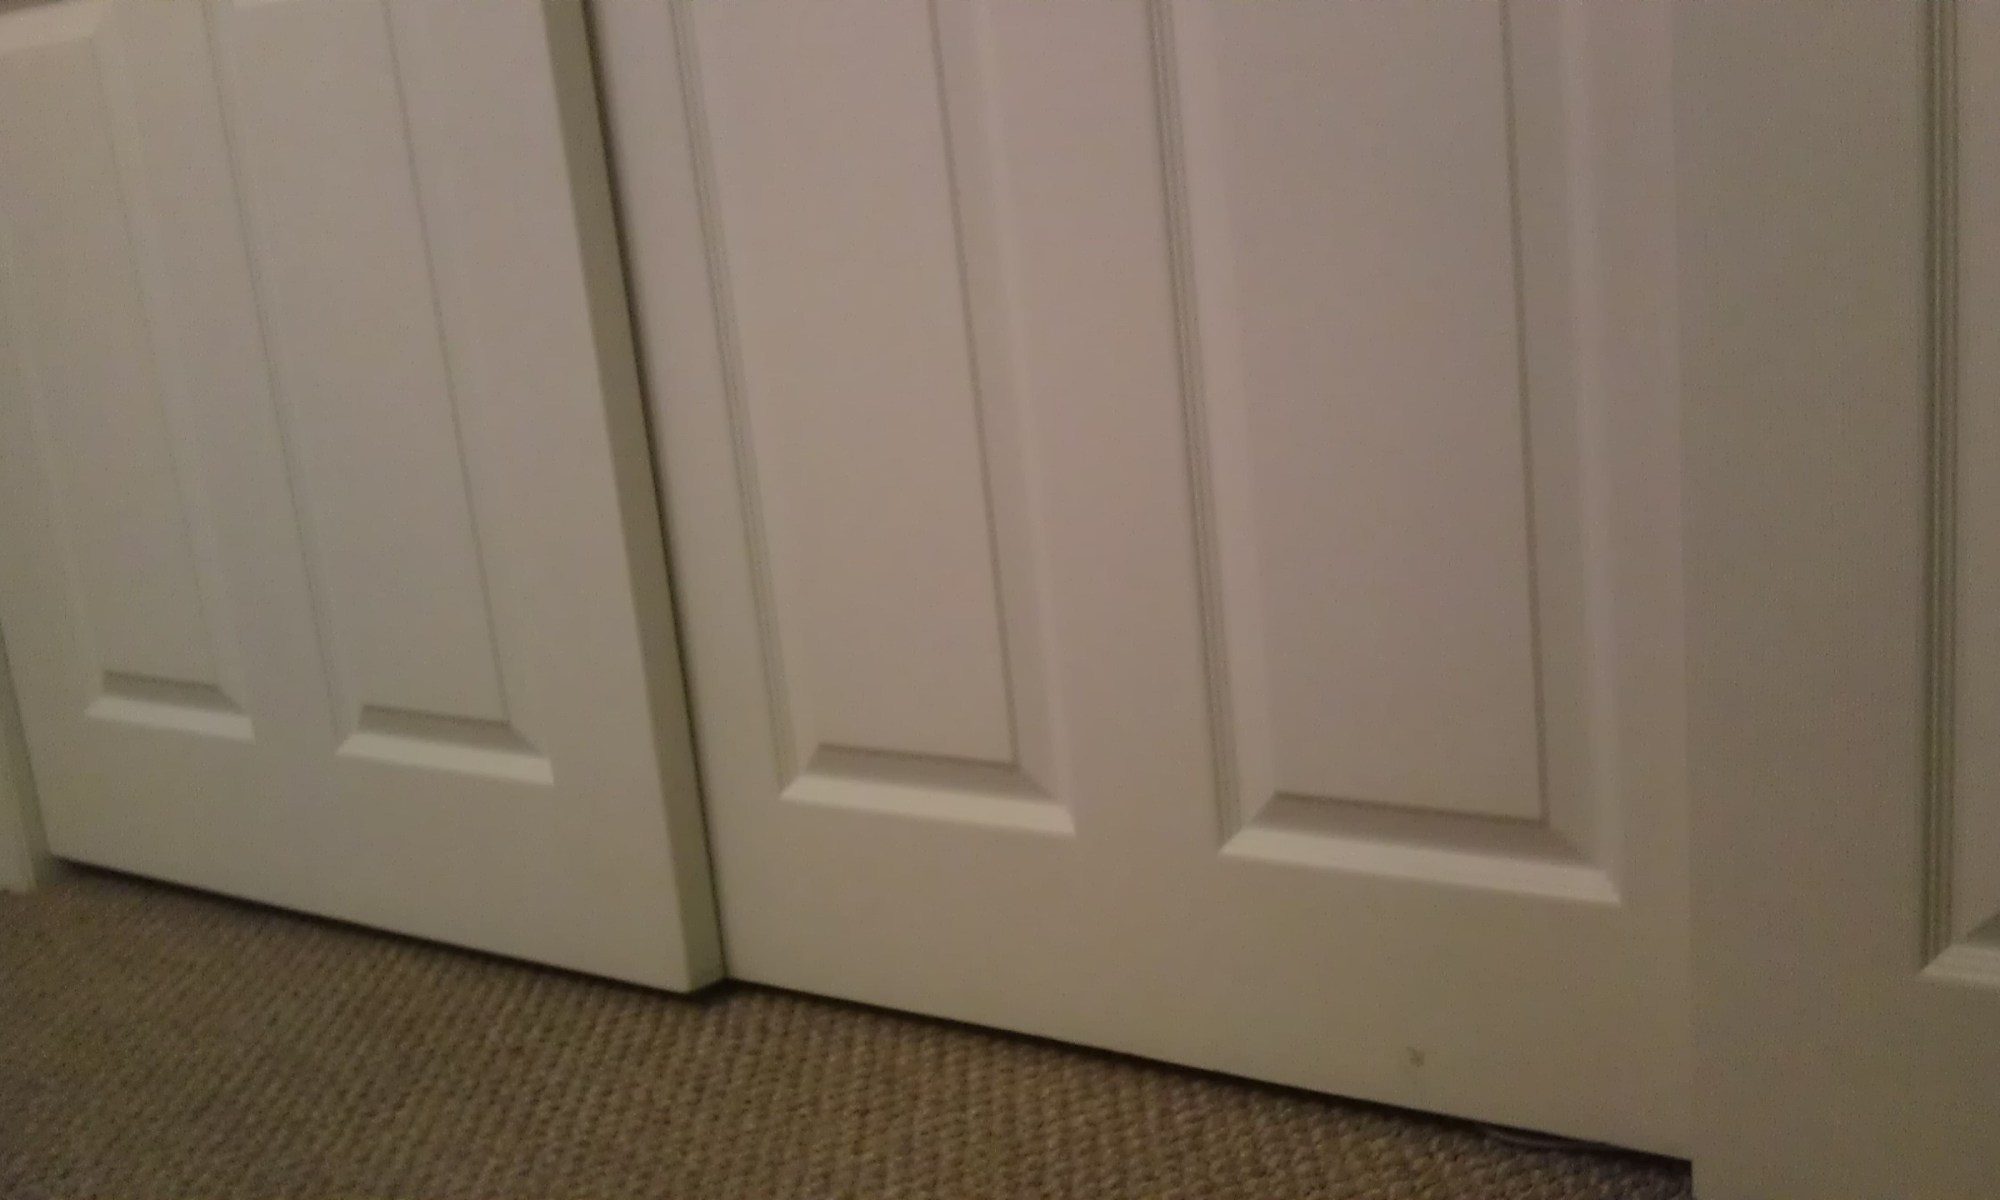 A closet for a diabetic cat to explore